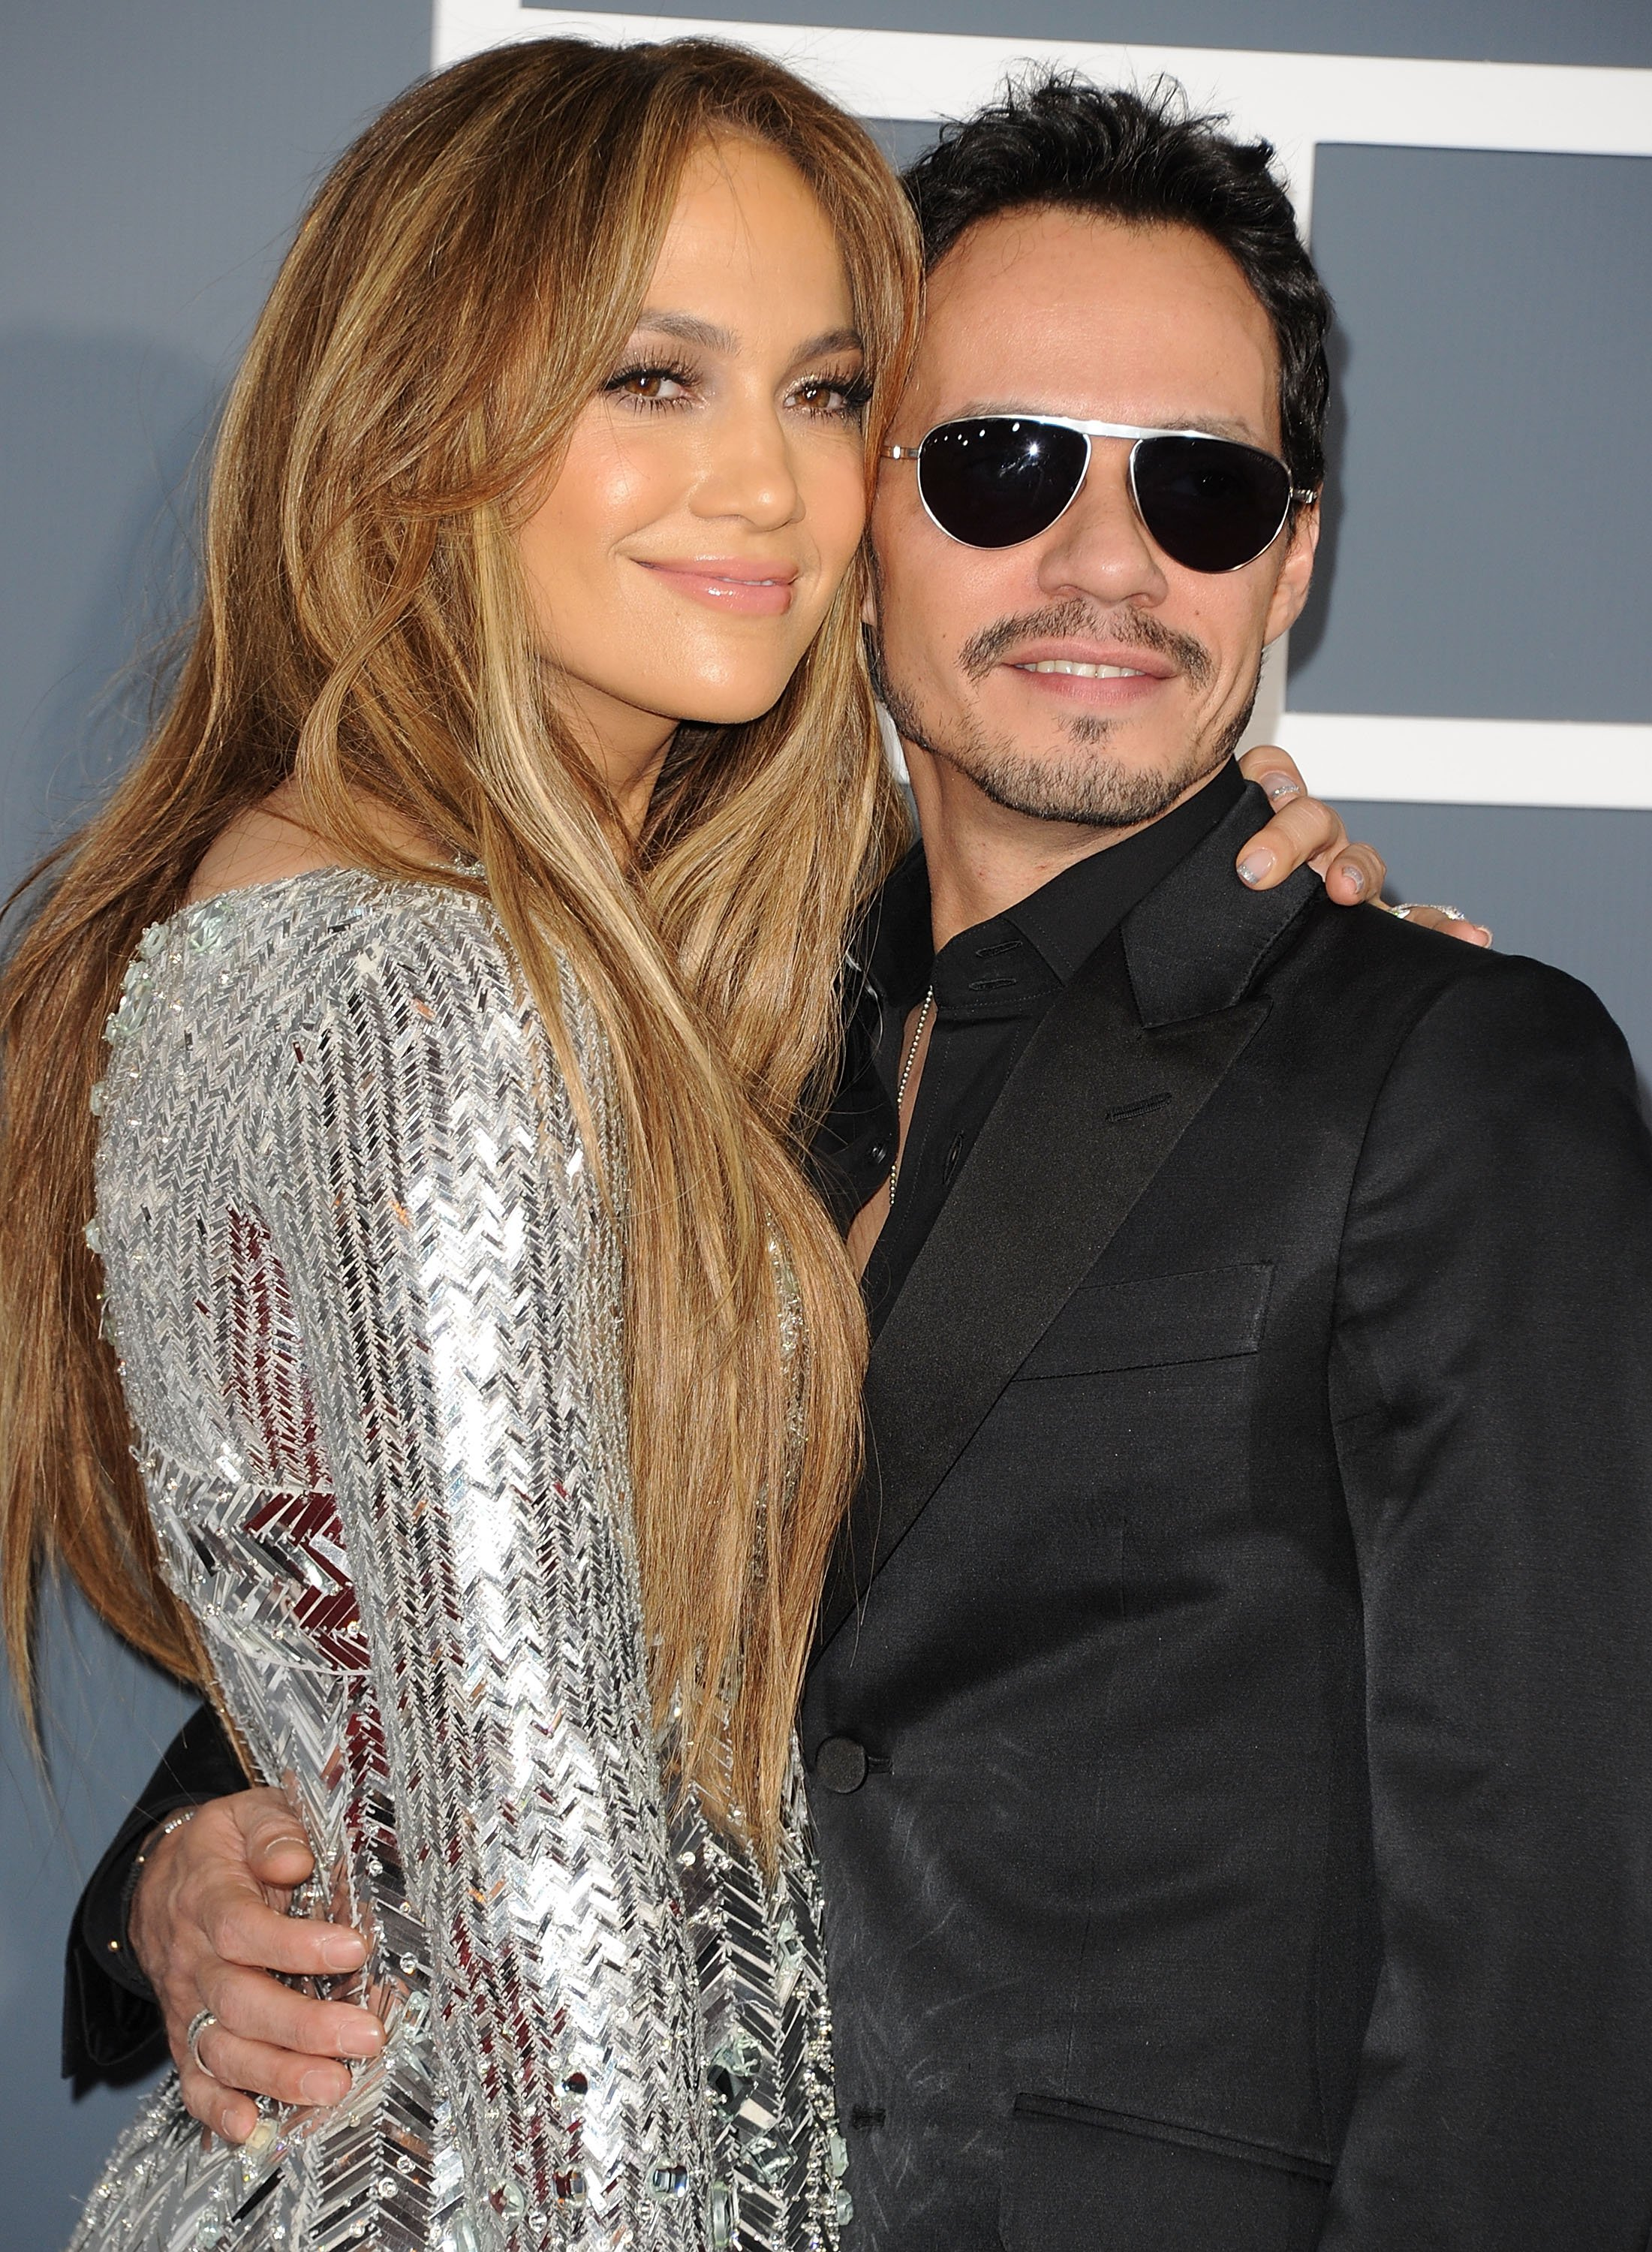 Jennifer Lopez and singer Marc Anthony arrive at The 53rd Annual GRAMMY Awards held at Staples Center on February 13, 2011, in Los Angeles, California. | Source: Getty Images.